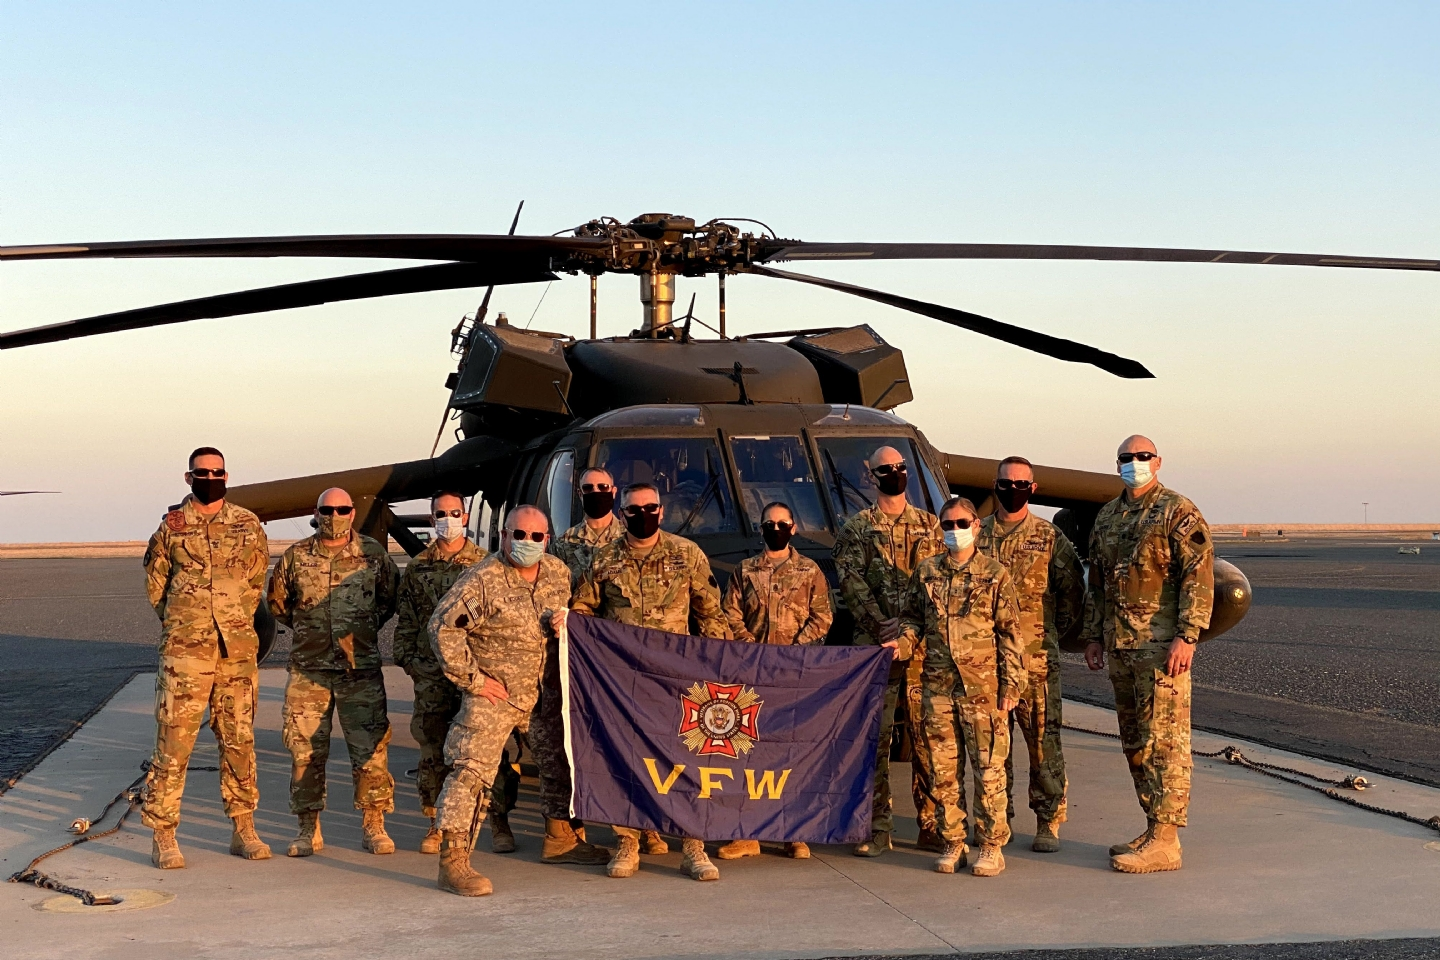 The 28th Infantry Division Expeditionary Combat Aviation Brigade poses with a VFW flag in front of a Blackhawk helicopter. The flag has traveled around the world to units with care packages. It hangs at PA VFW HQs with these photos around it. David Sandman, former Director of Communications, began the tradition.